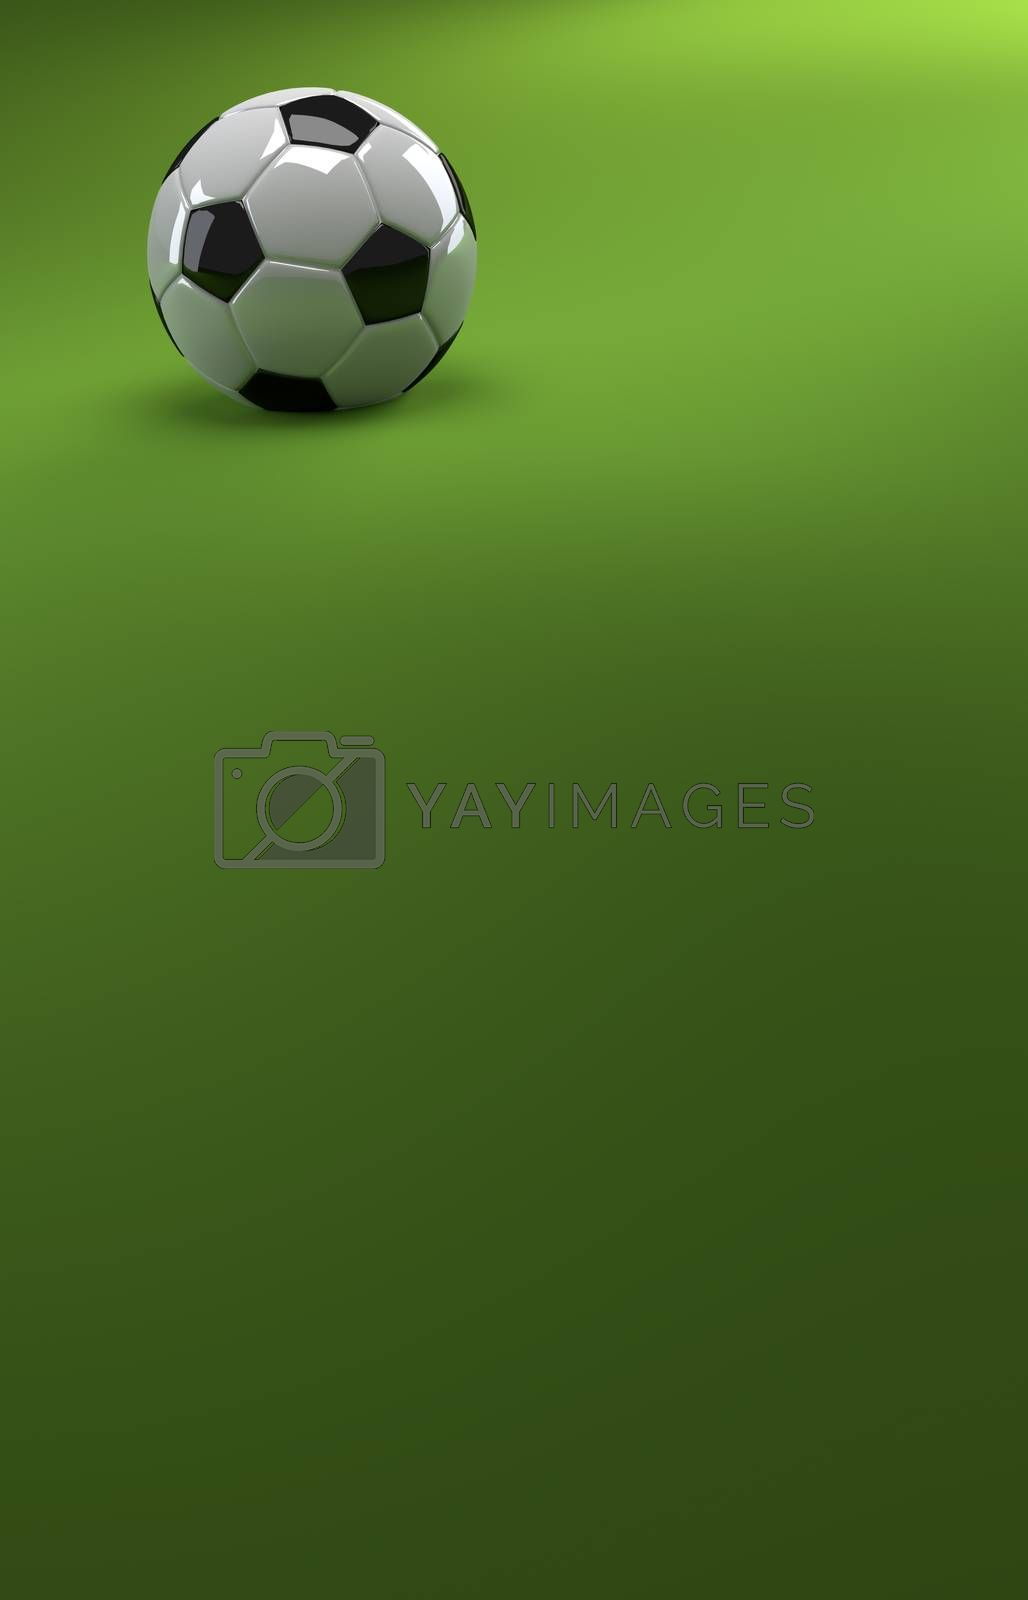 A CGI image of a soccer ball on a green background, like a football pitch, with plenty of copyspace.